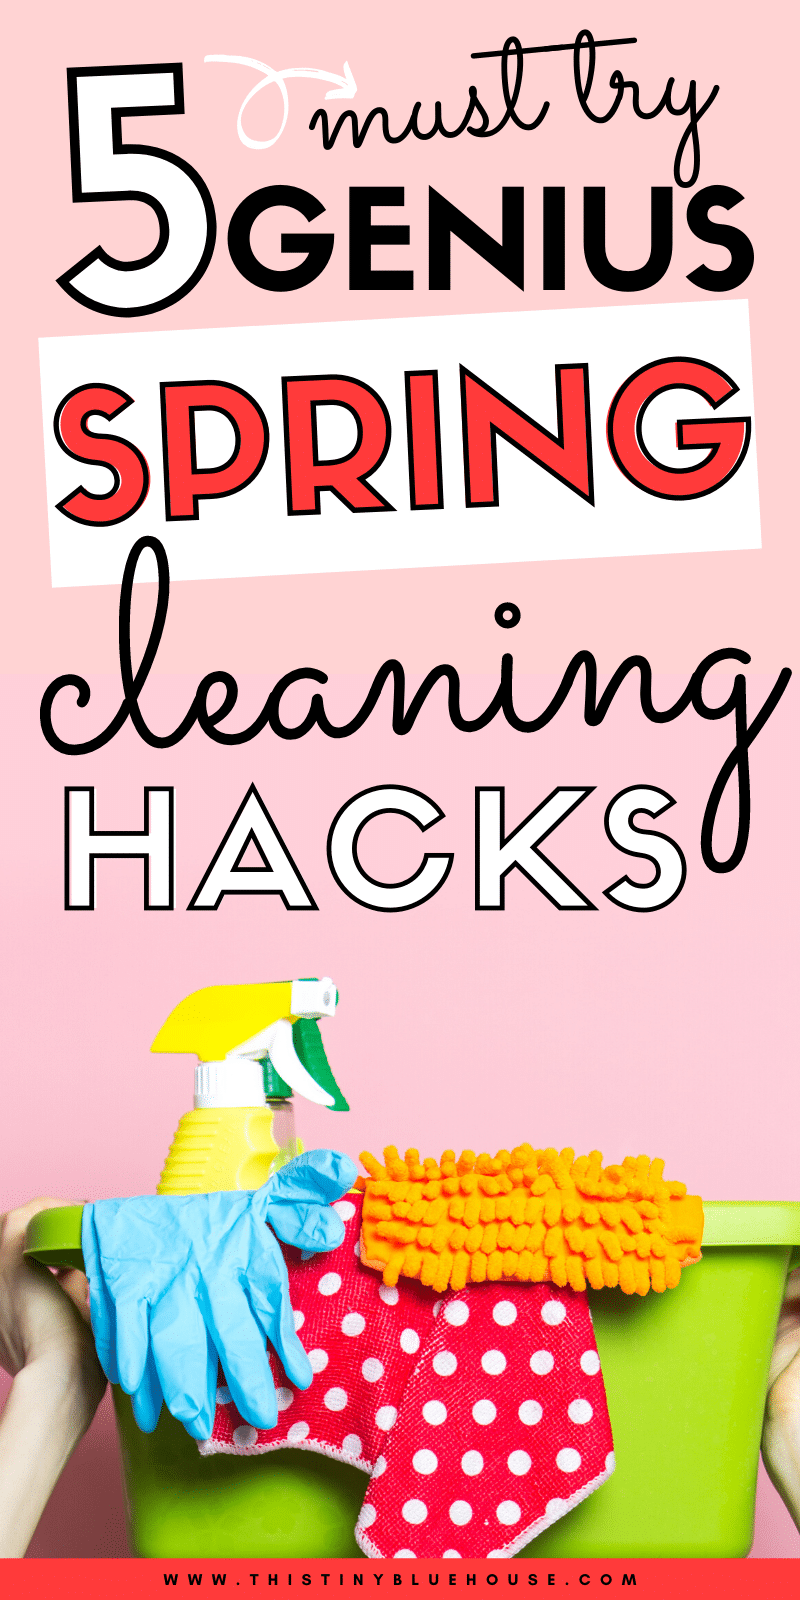 Get your house sparkling clean with these 5 easy Spring Cleaning hacks. This easy to follow and FREE printable checklist is guaranteed to get your home in tip top shape this spring. #springcleaning #springcleaningchecklist #springcleaninghacks #springcleaningtips #springcleaningdeclutter #springcleaninghowto #springcleaningschedule #springcleaningmotivation